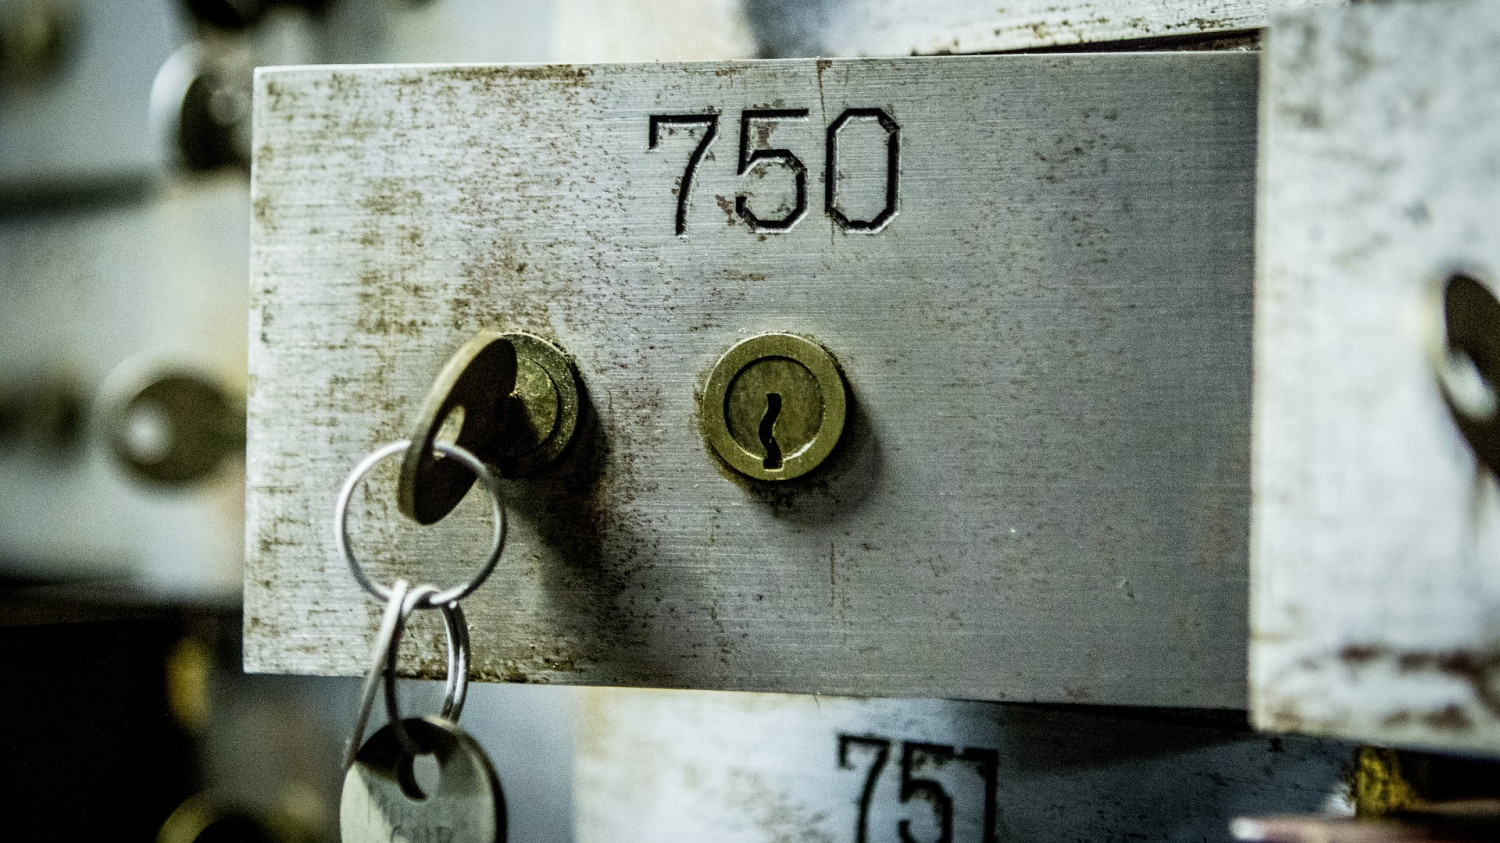 Image of an open safety deposit box